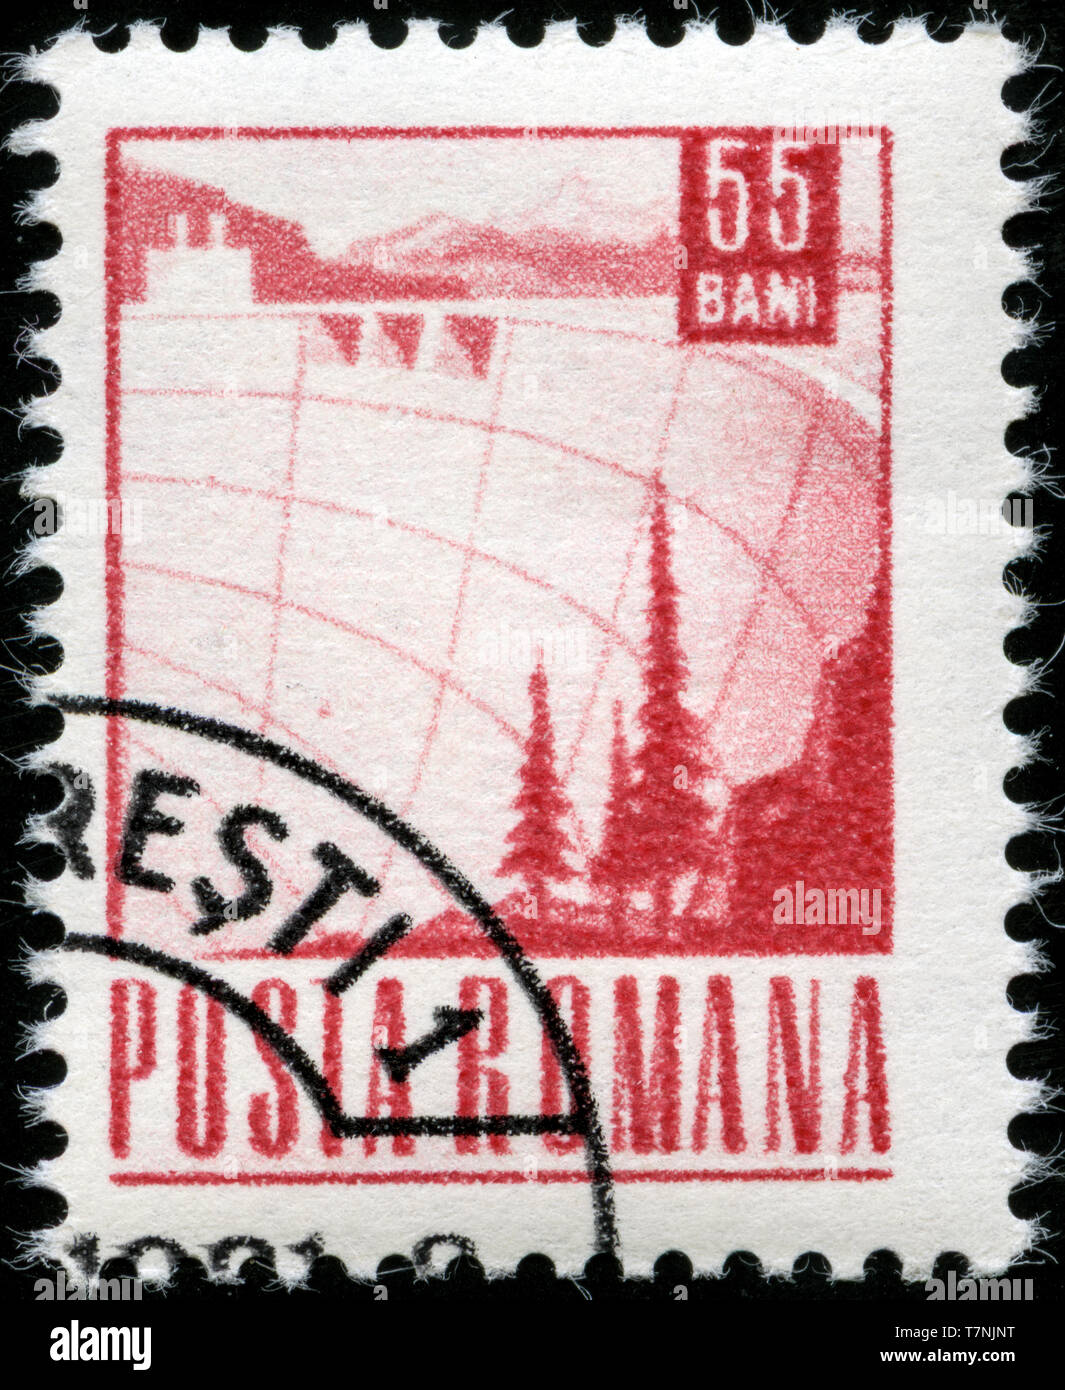 Postage stamp from Romania in the Postal and Transport series issued in 1969 - Stock Image